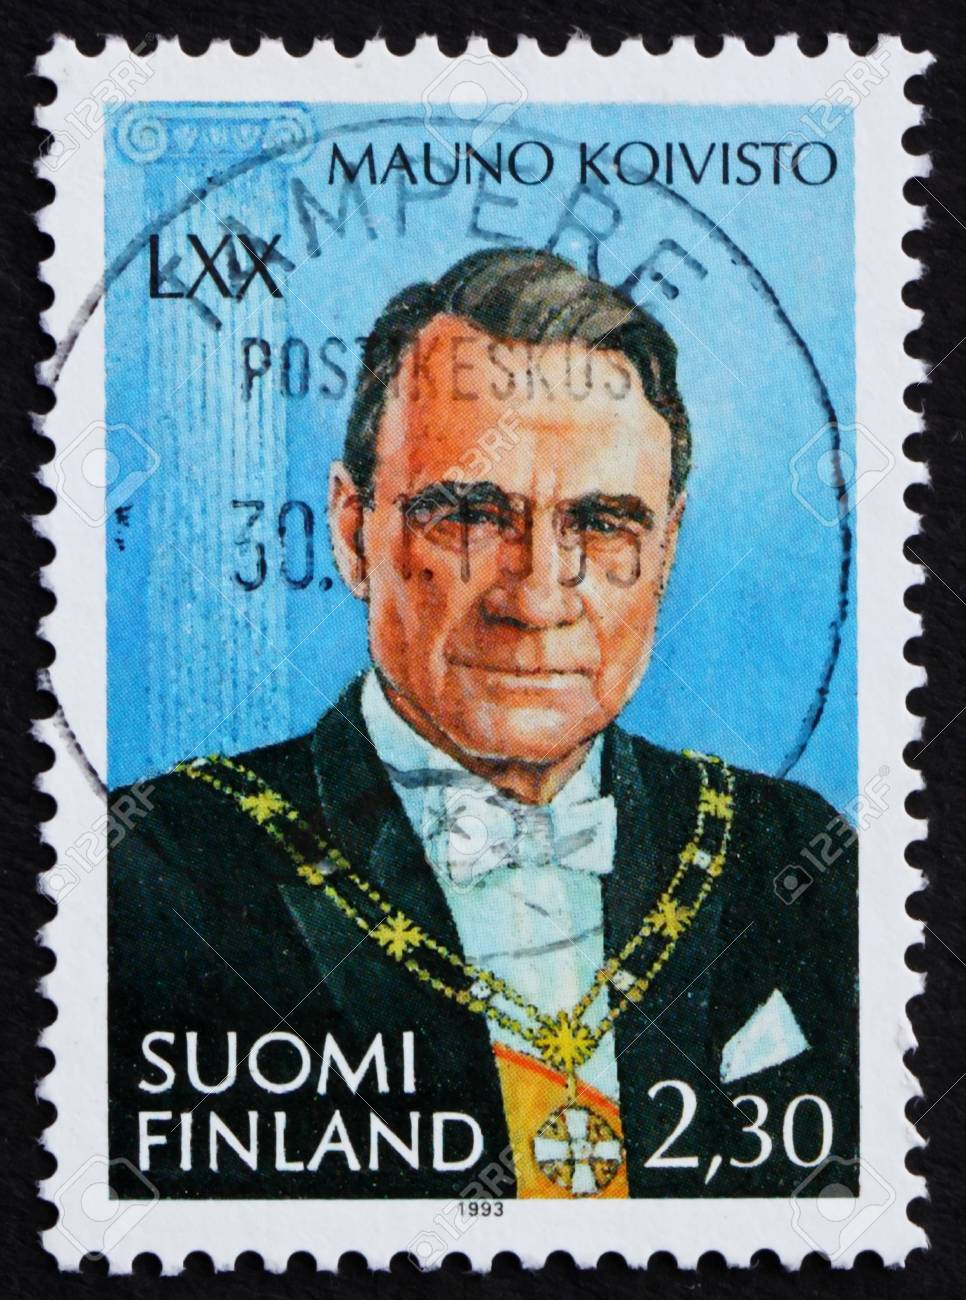 FINLAND - CIRCA 1993: a stamp printed in the Finland shows Mauno Koivisto, 9th President of the Republic of Finland, 1982-1994, circa 1993 Stock Photo - 11960406